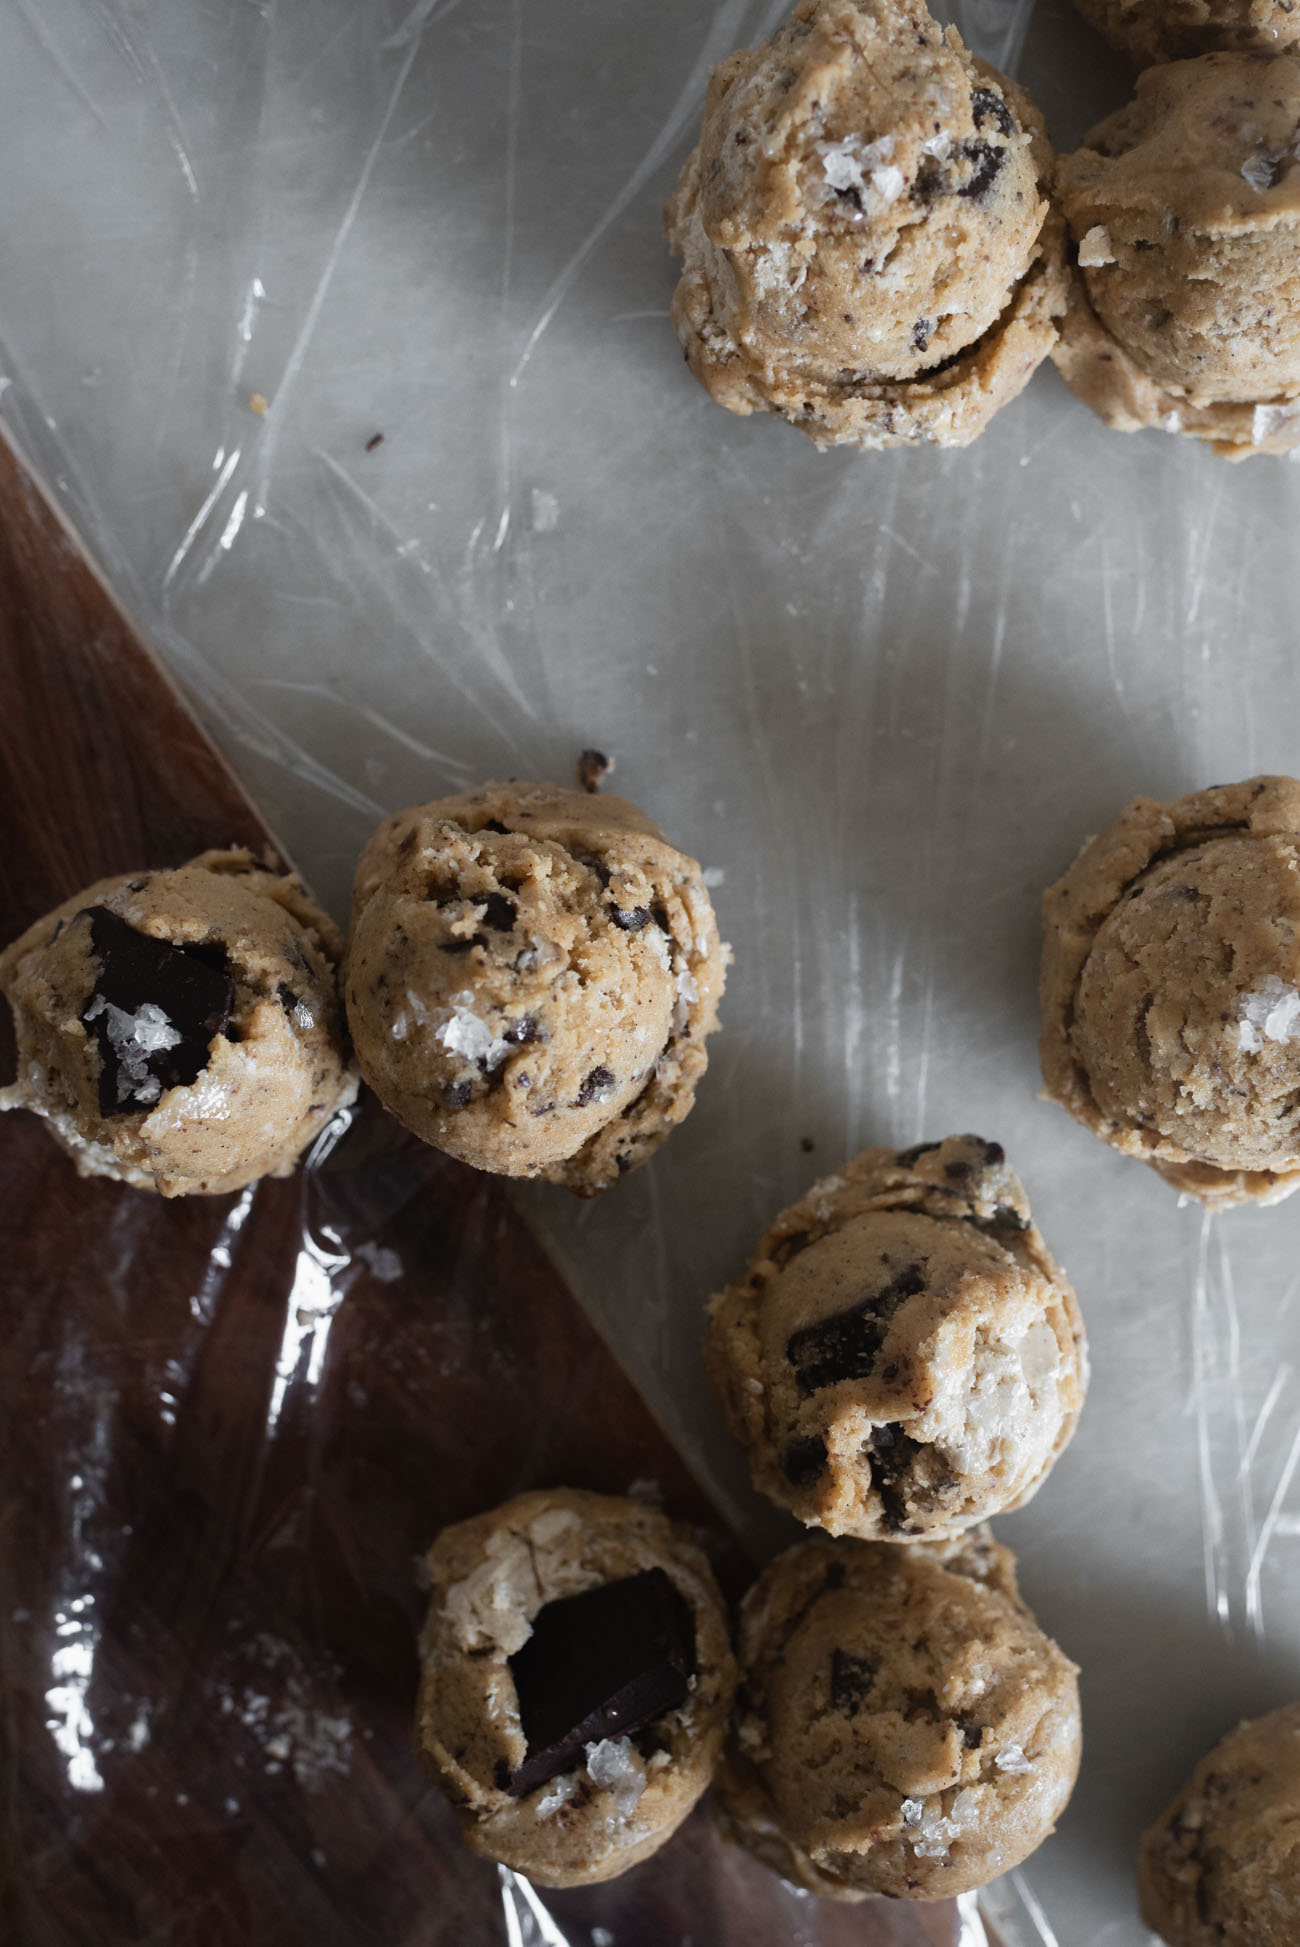 Halvah-Burnt-Butter-and-Walnut-Chocolate-Chunk-Cookies-6-of-14.jpg